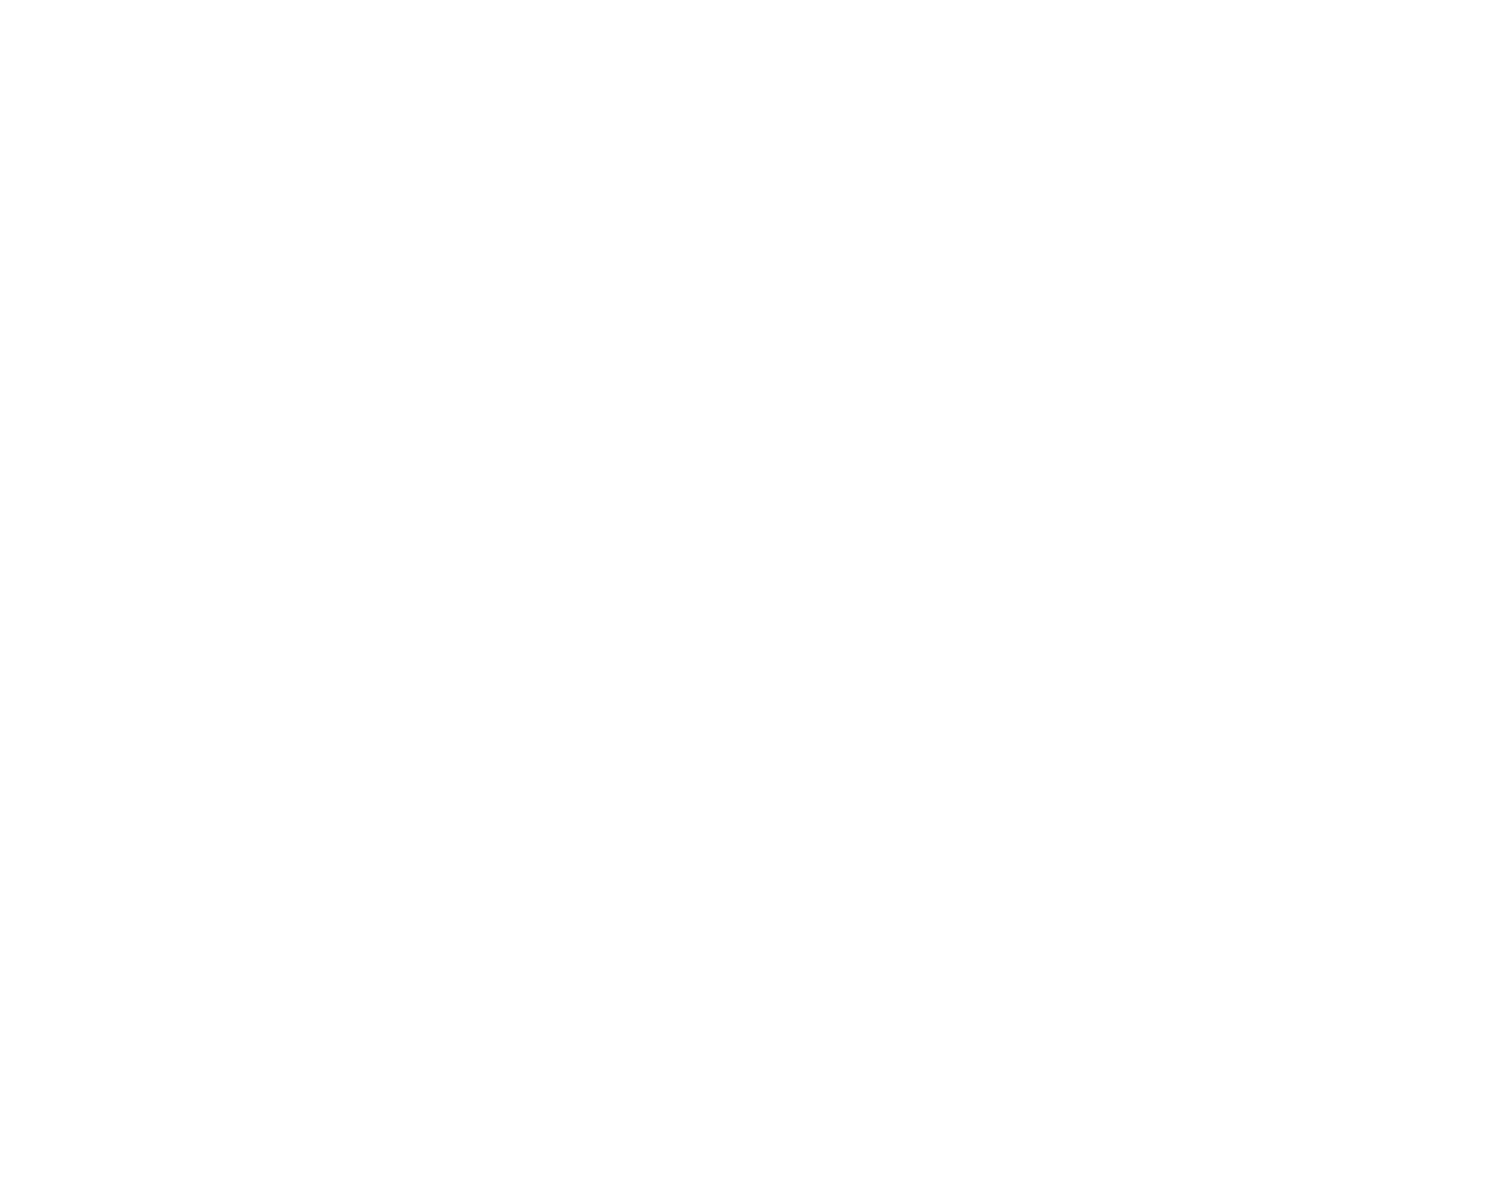 Brisbane Festoon Hire